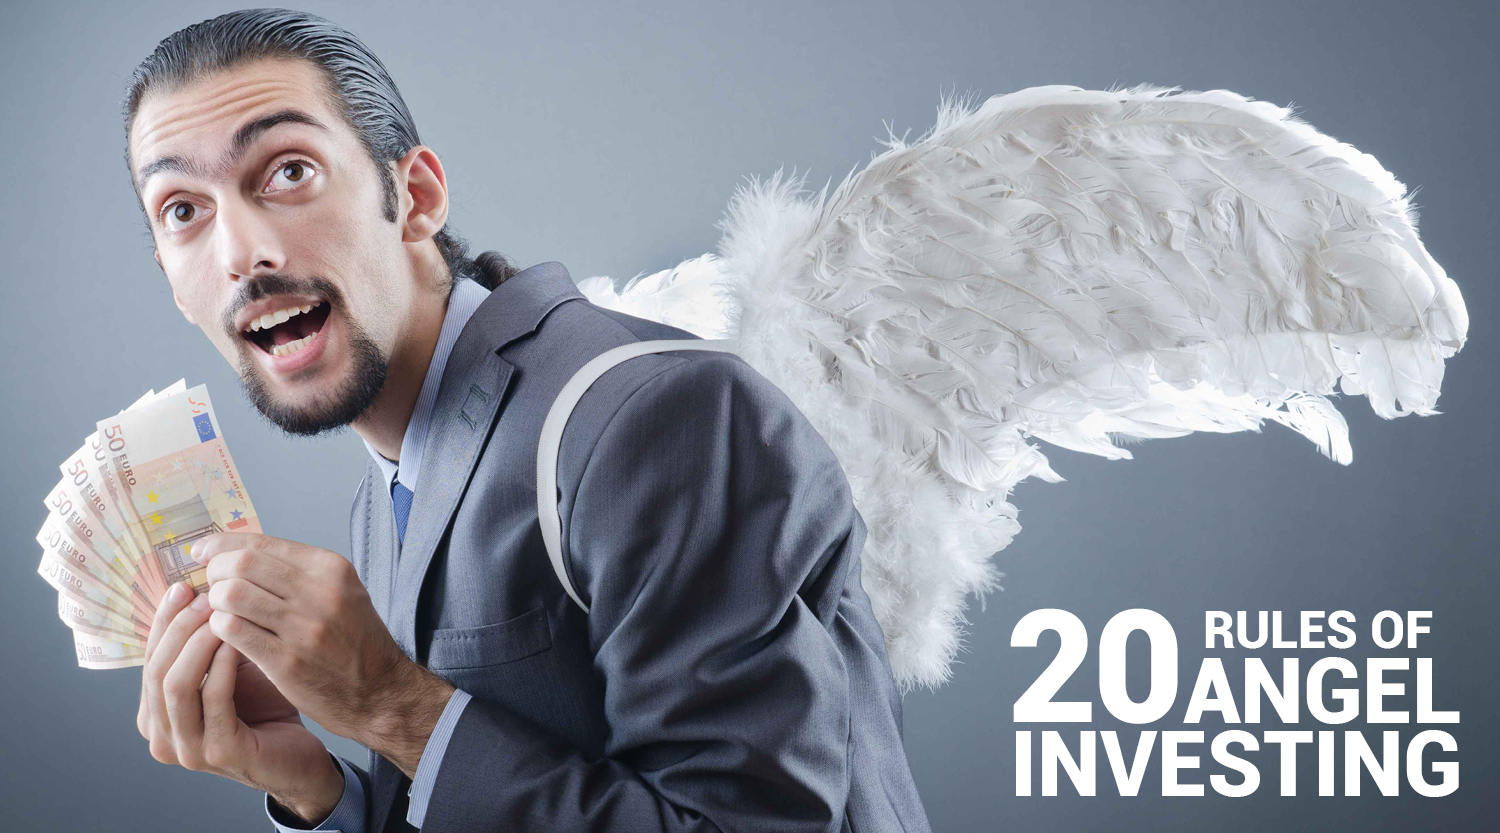 20 rules of angel investing